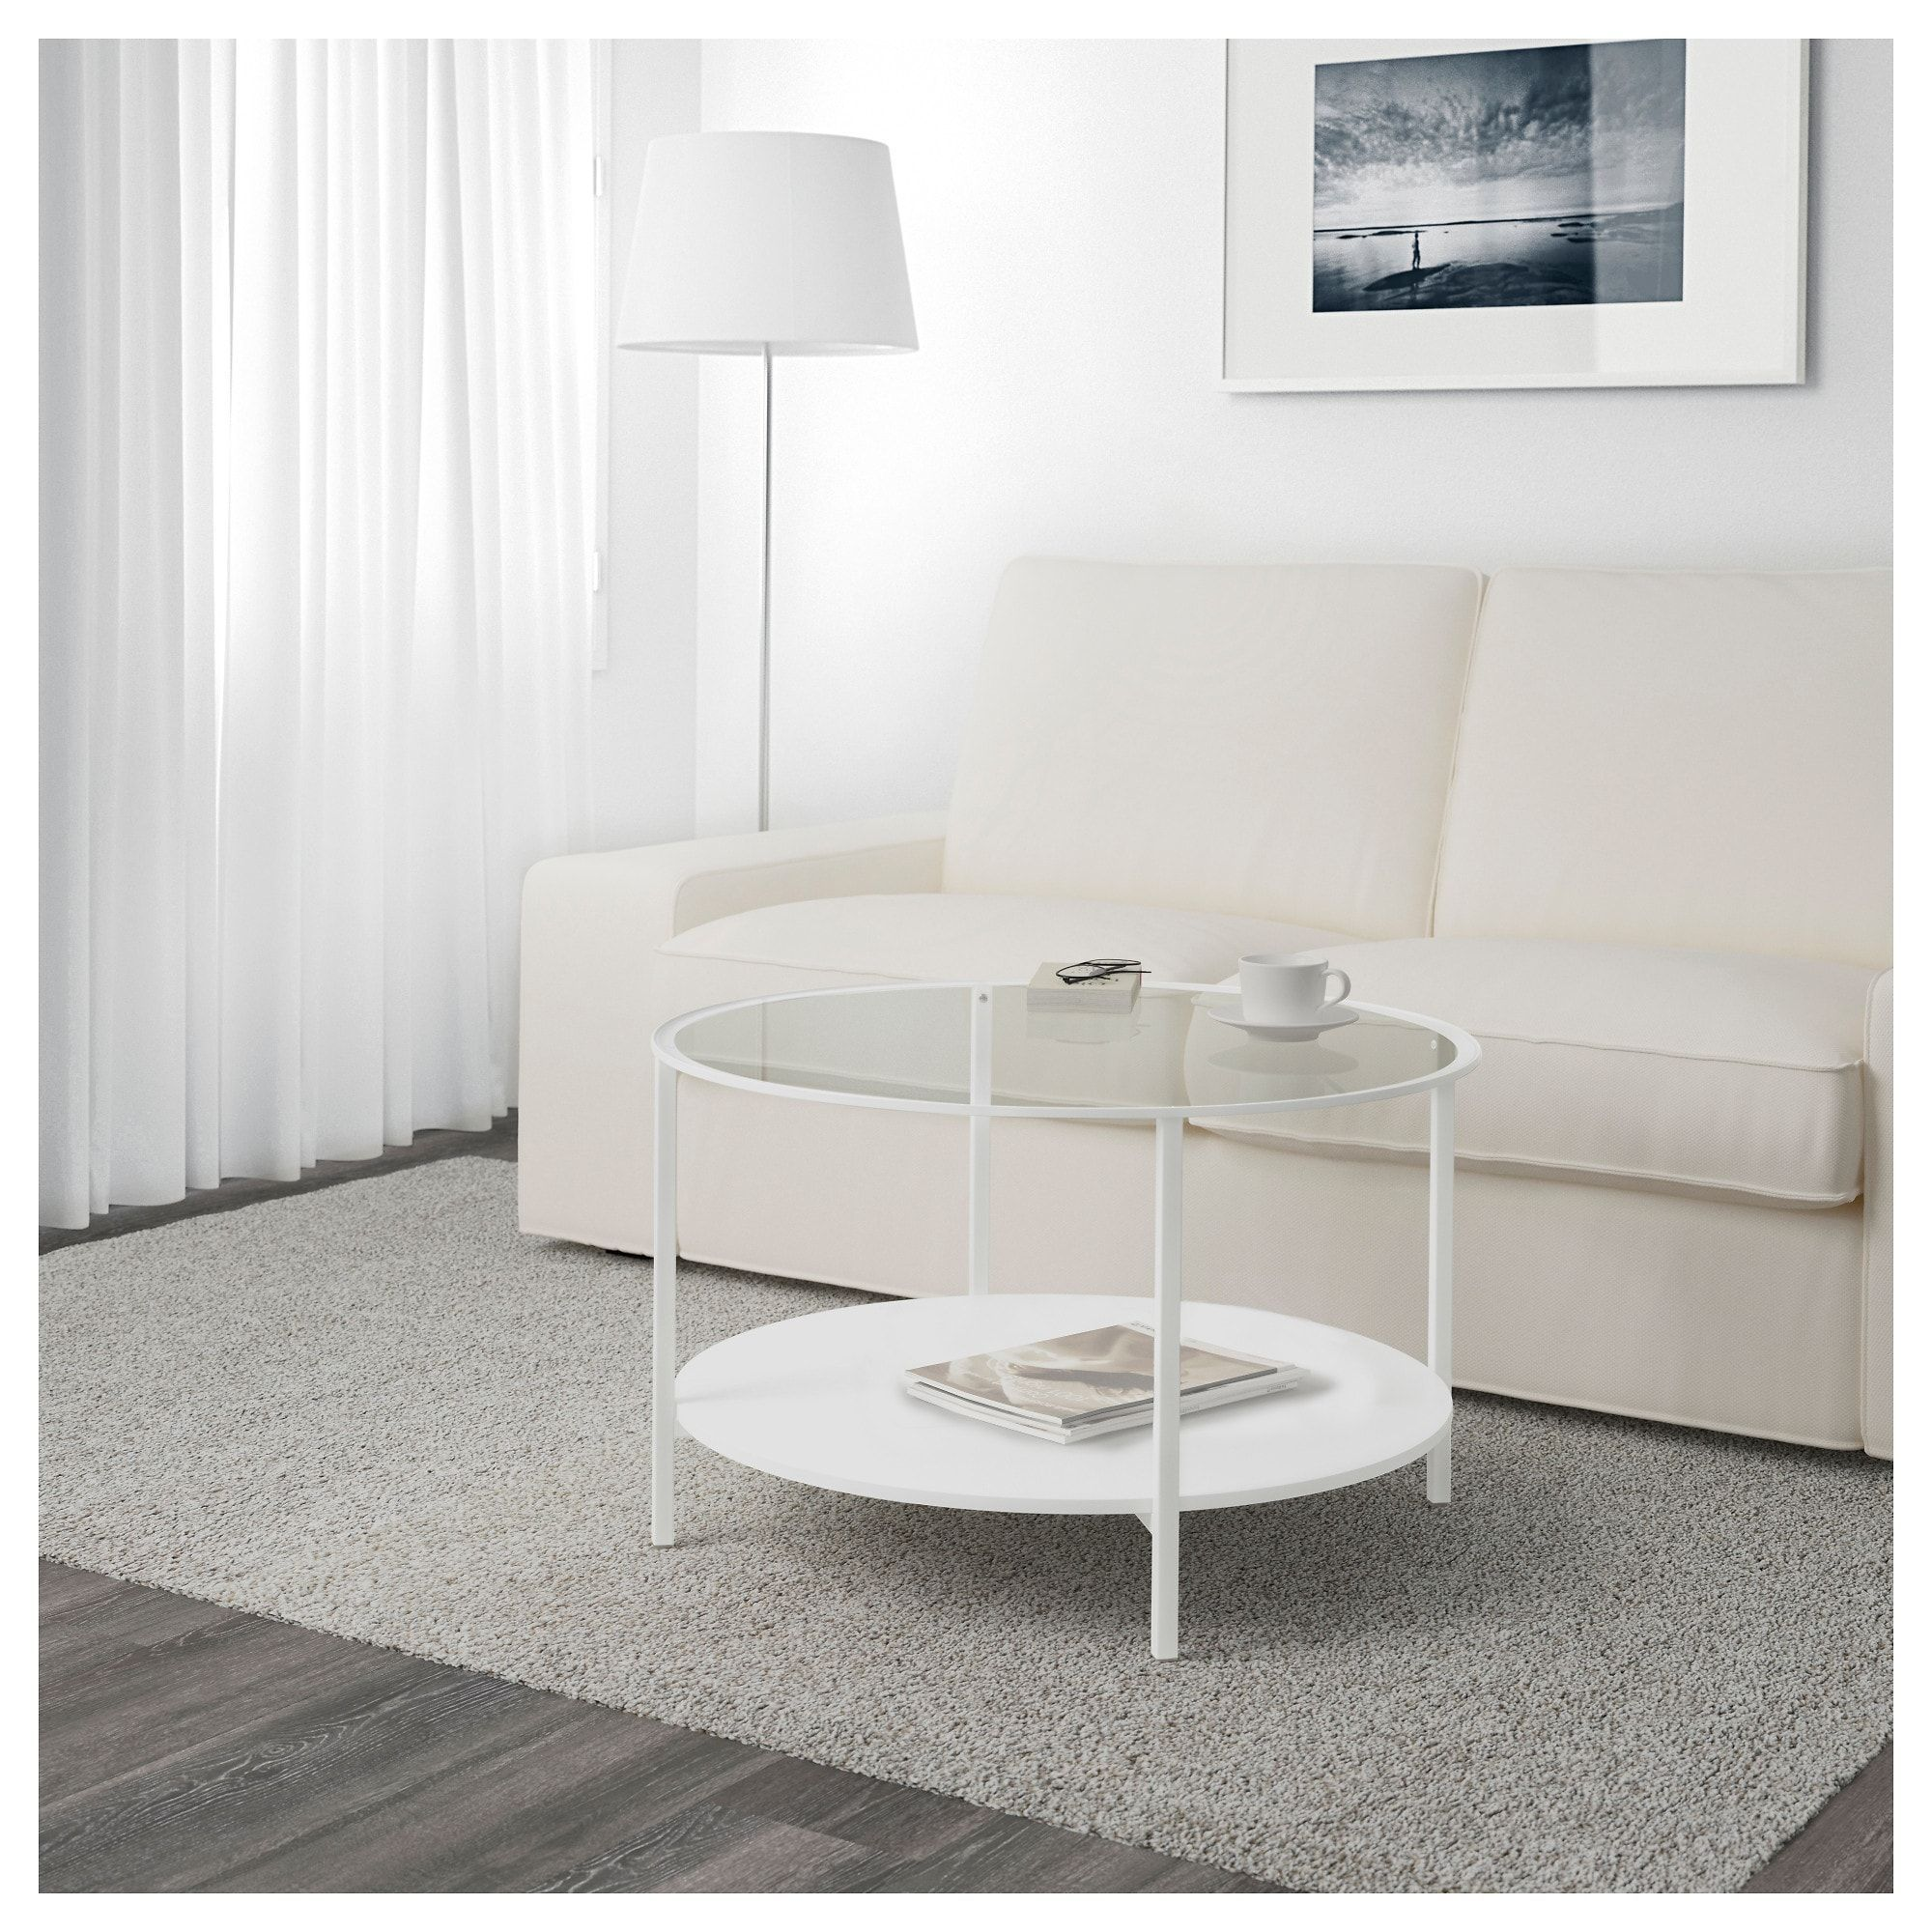 Ikea Strind Coffee Table Coffee Table Coffee Table White At Home Furniture Store [ 2000 x 2000 Pixel ]